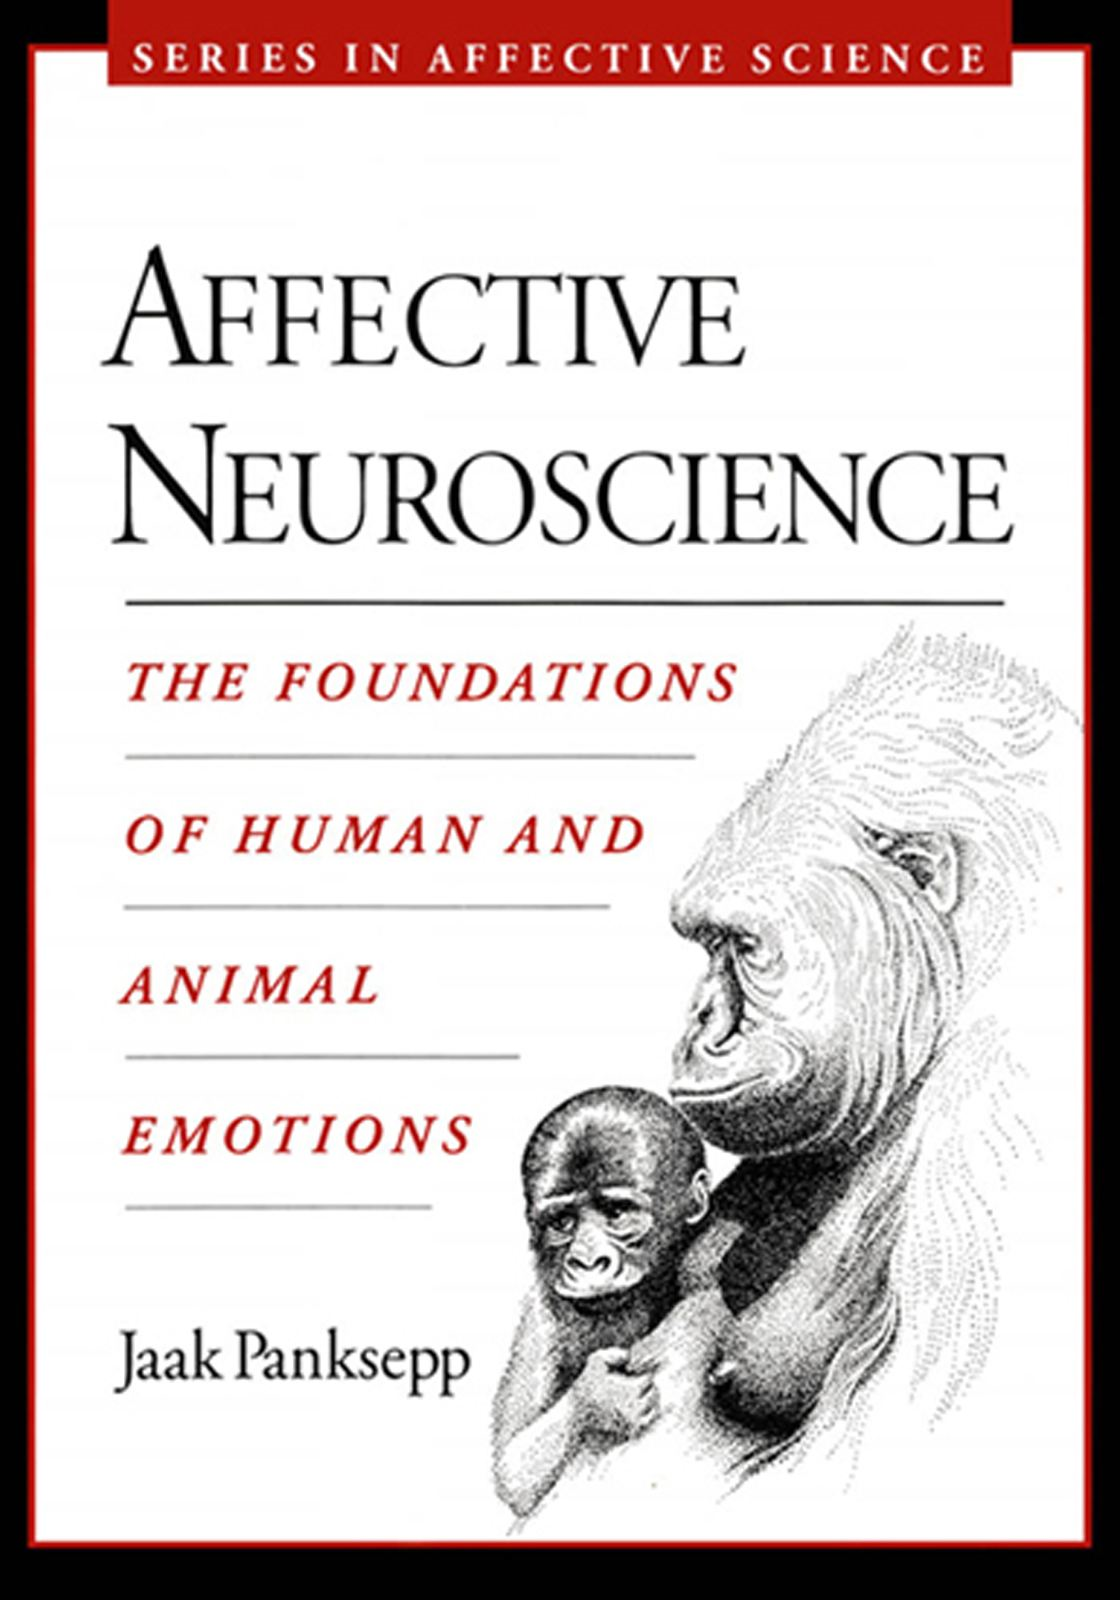 Affective Neuroscience : The Foundations of Human and Animal Emotions By: Jaak Panksepp